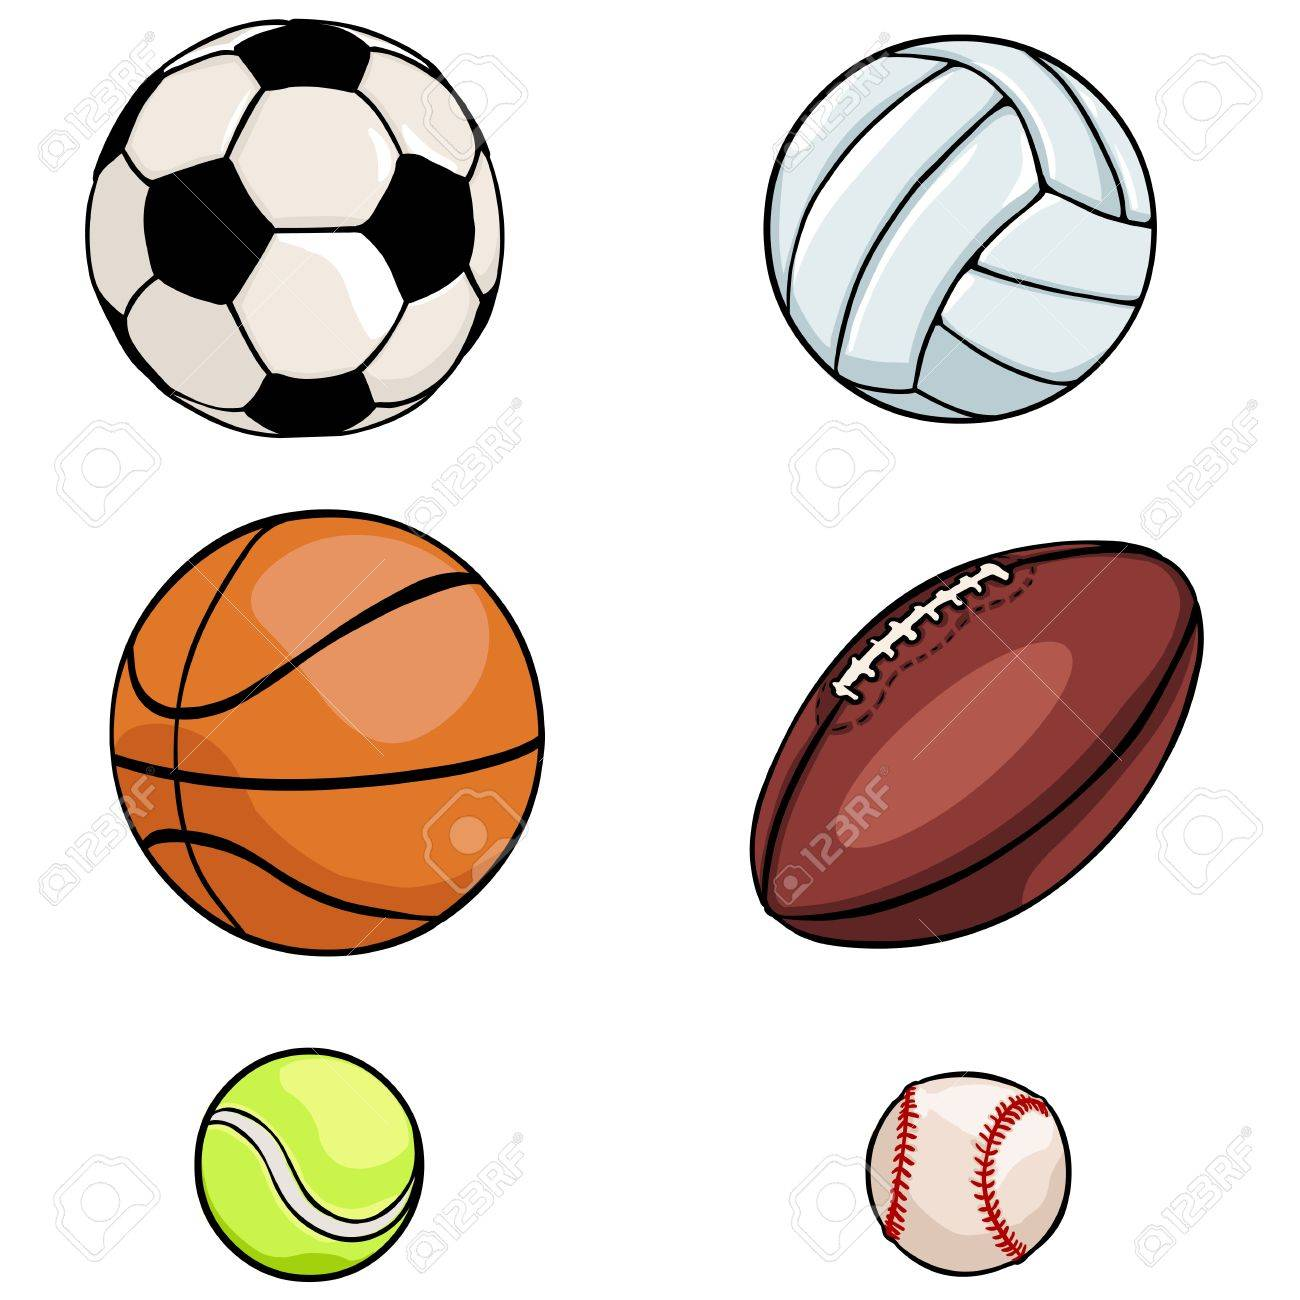 vector set of sports balls on white background rh 123rf com clipart pictures sports balls clipart pictures sports balls